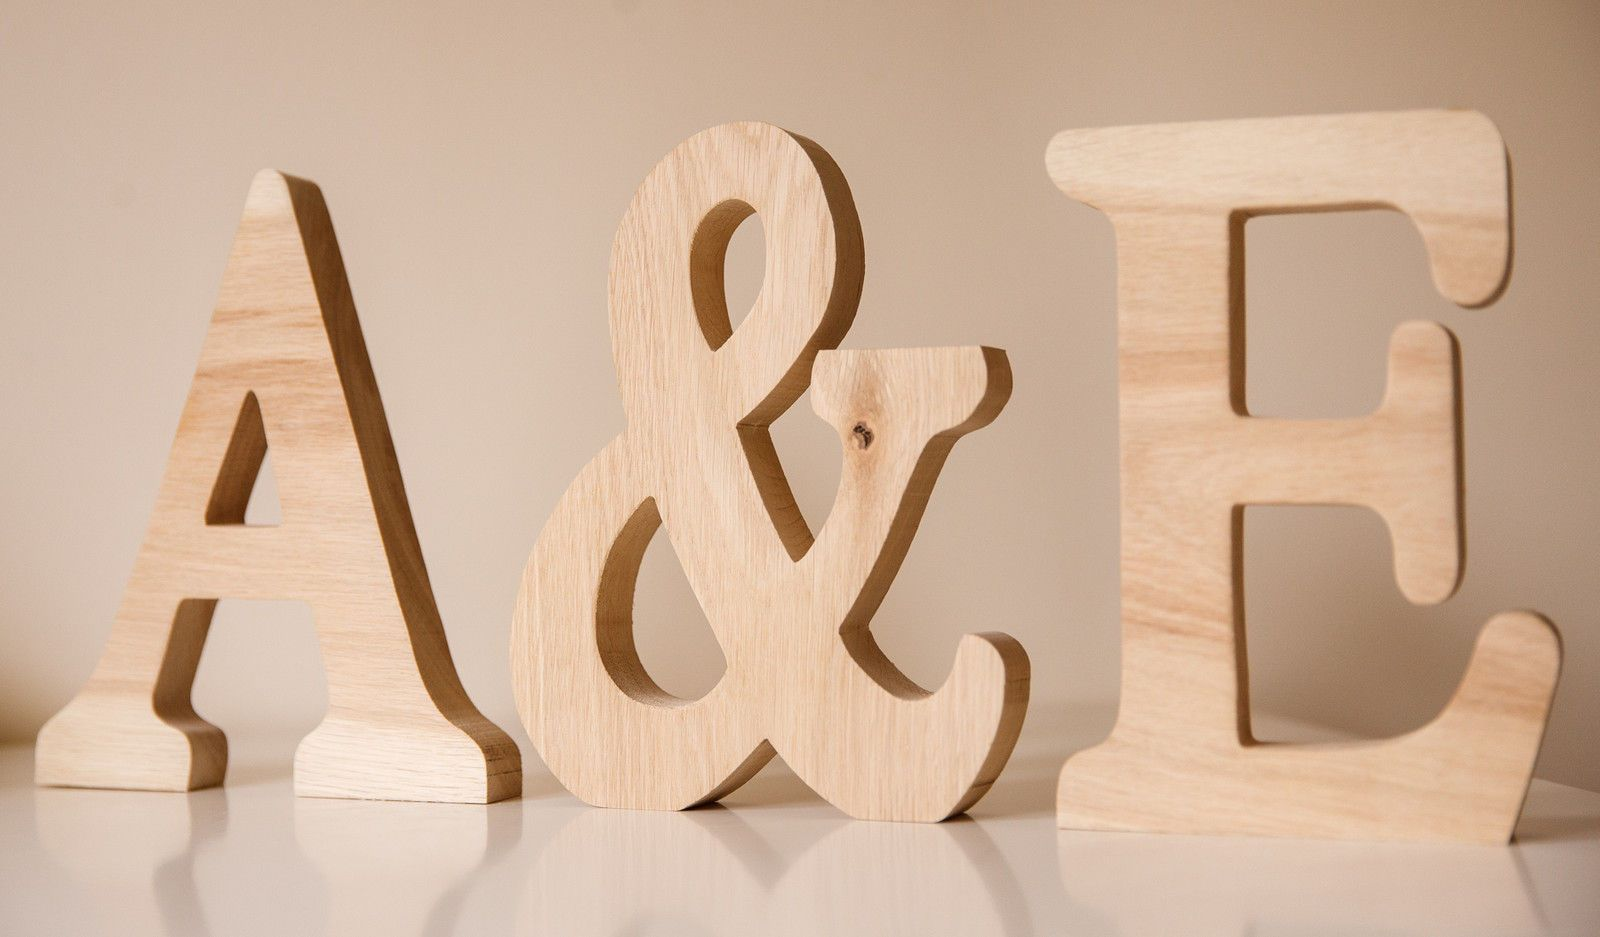 Large wooden letters   Solid oak and Weddings LARGE WOODEN LETTERS